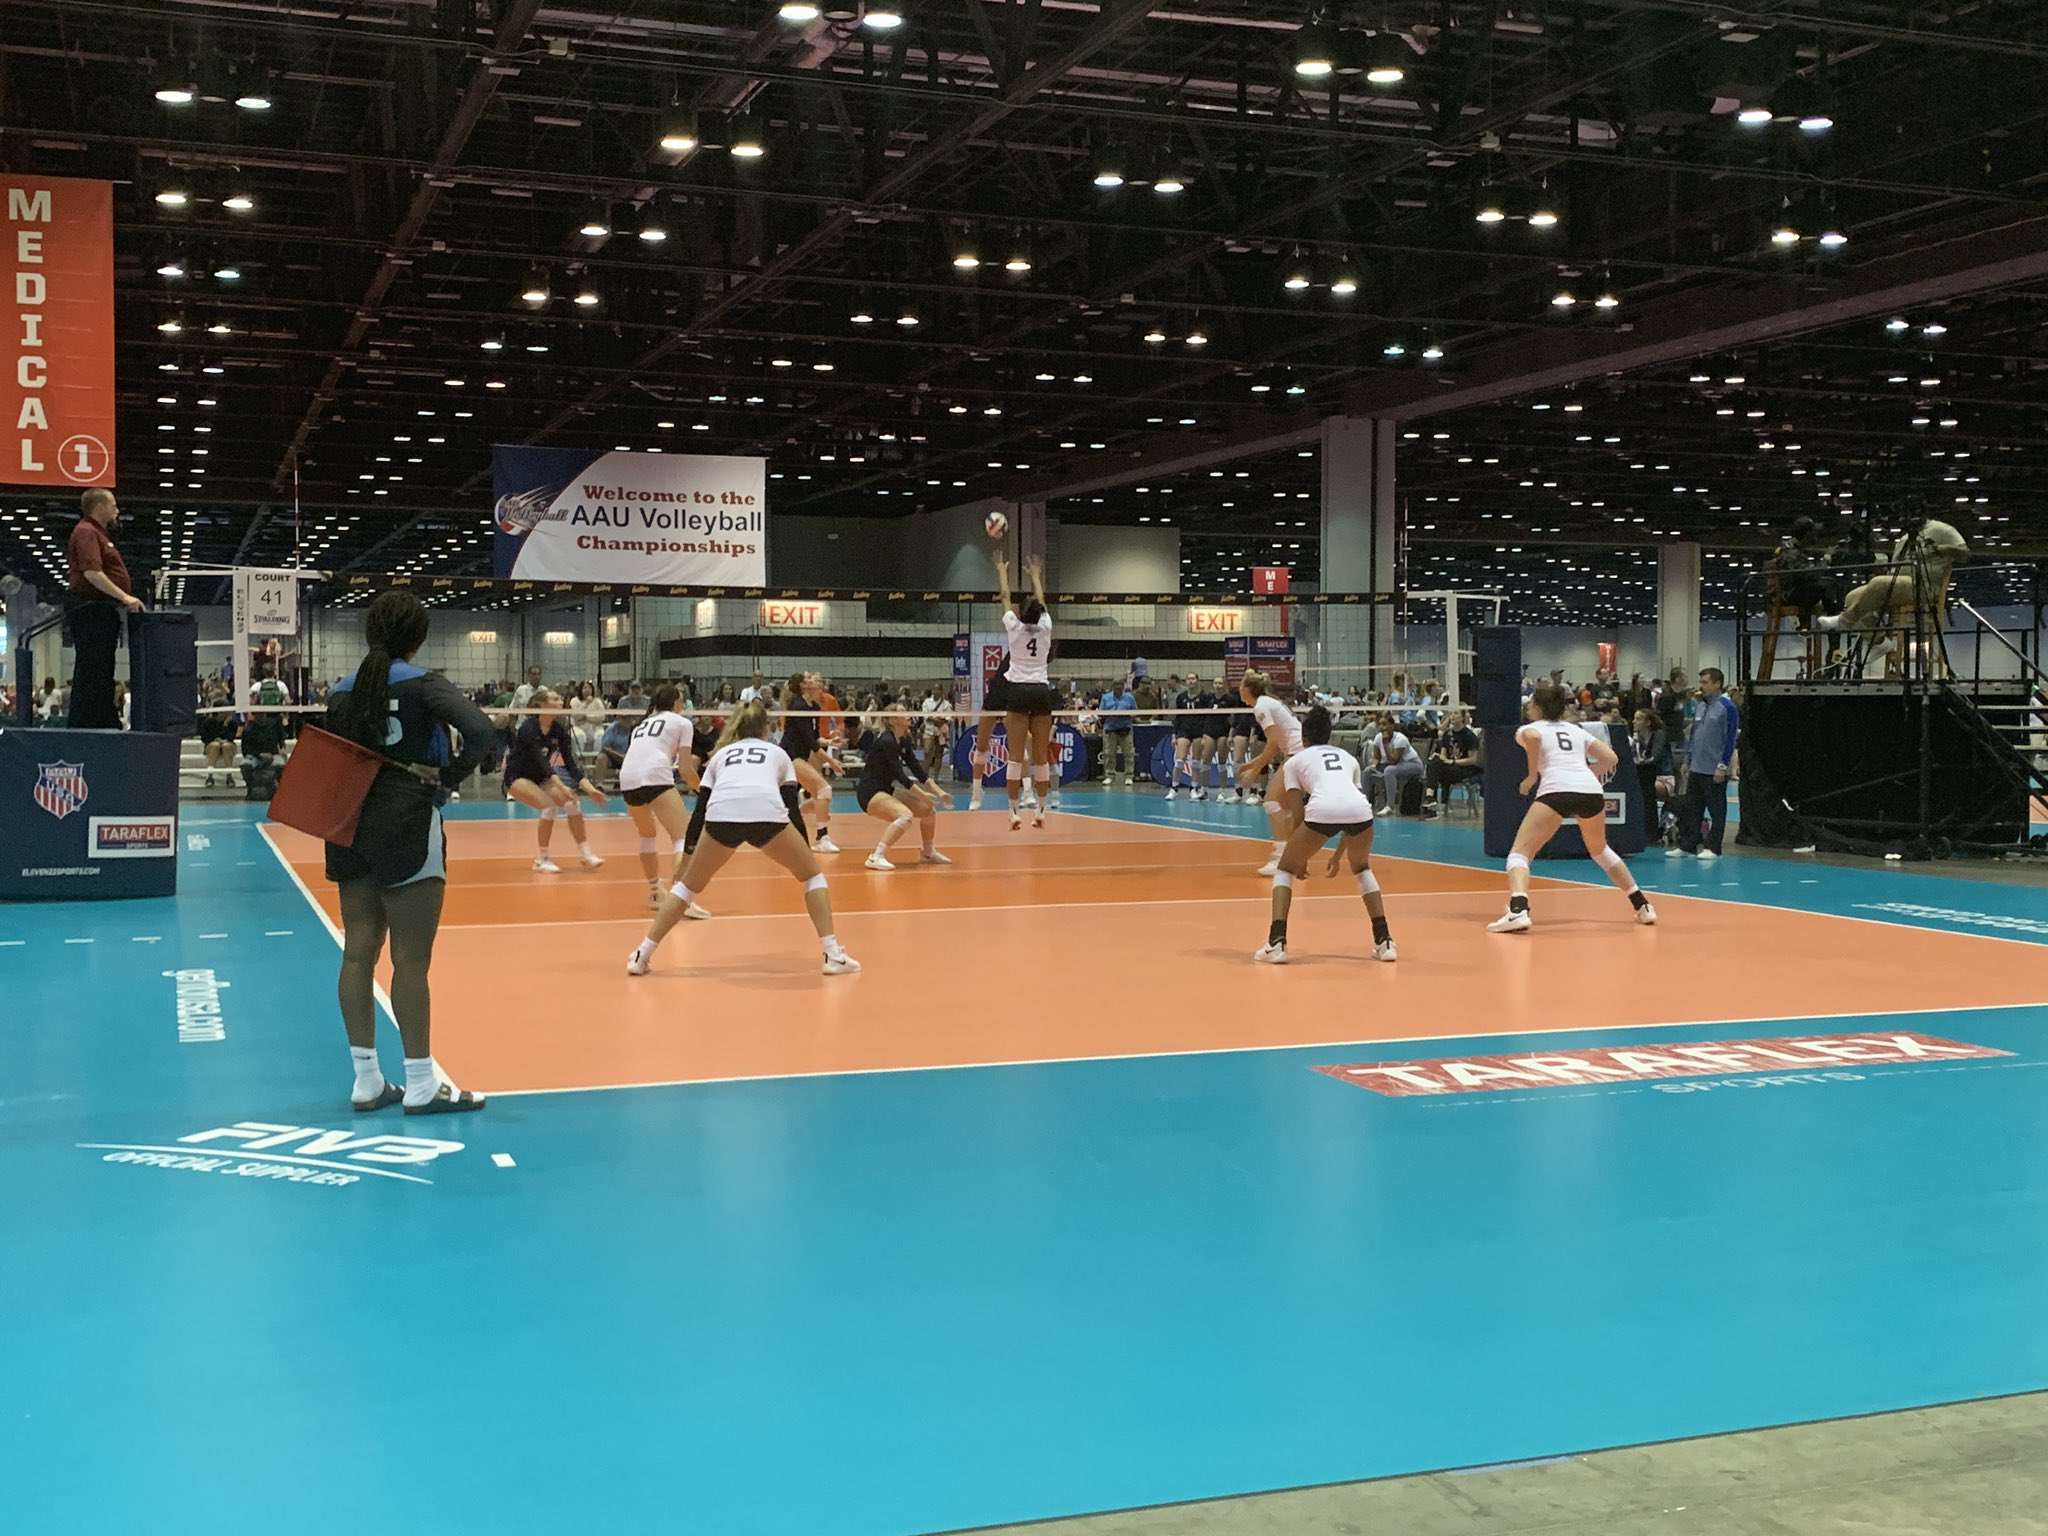 Amateur Athletic Union Junior National Volleyball Championships Welcomes Thousands to the Orange County Convention Center